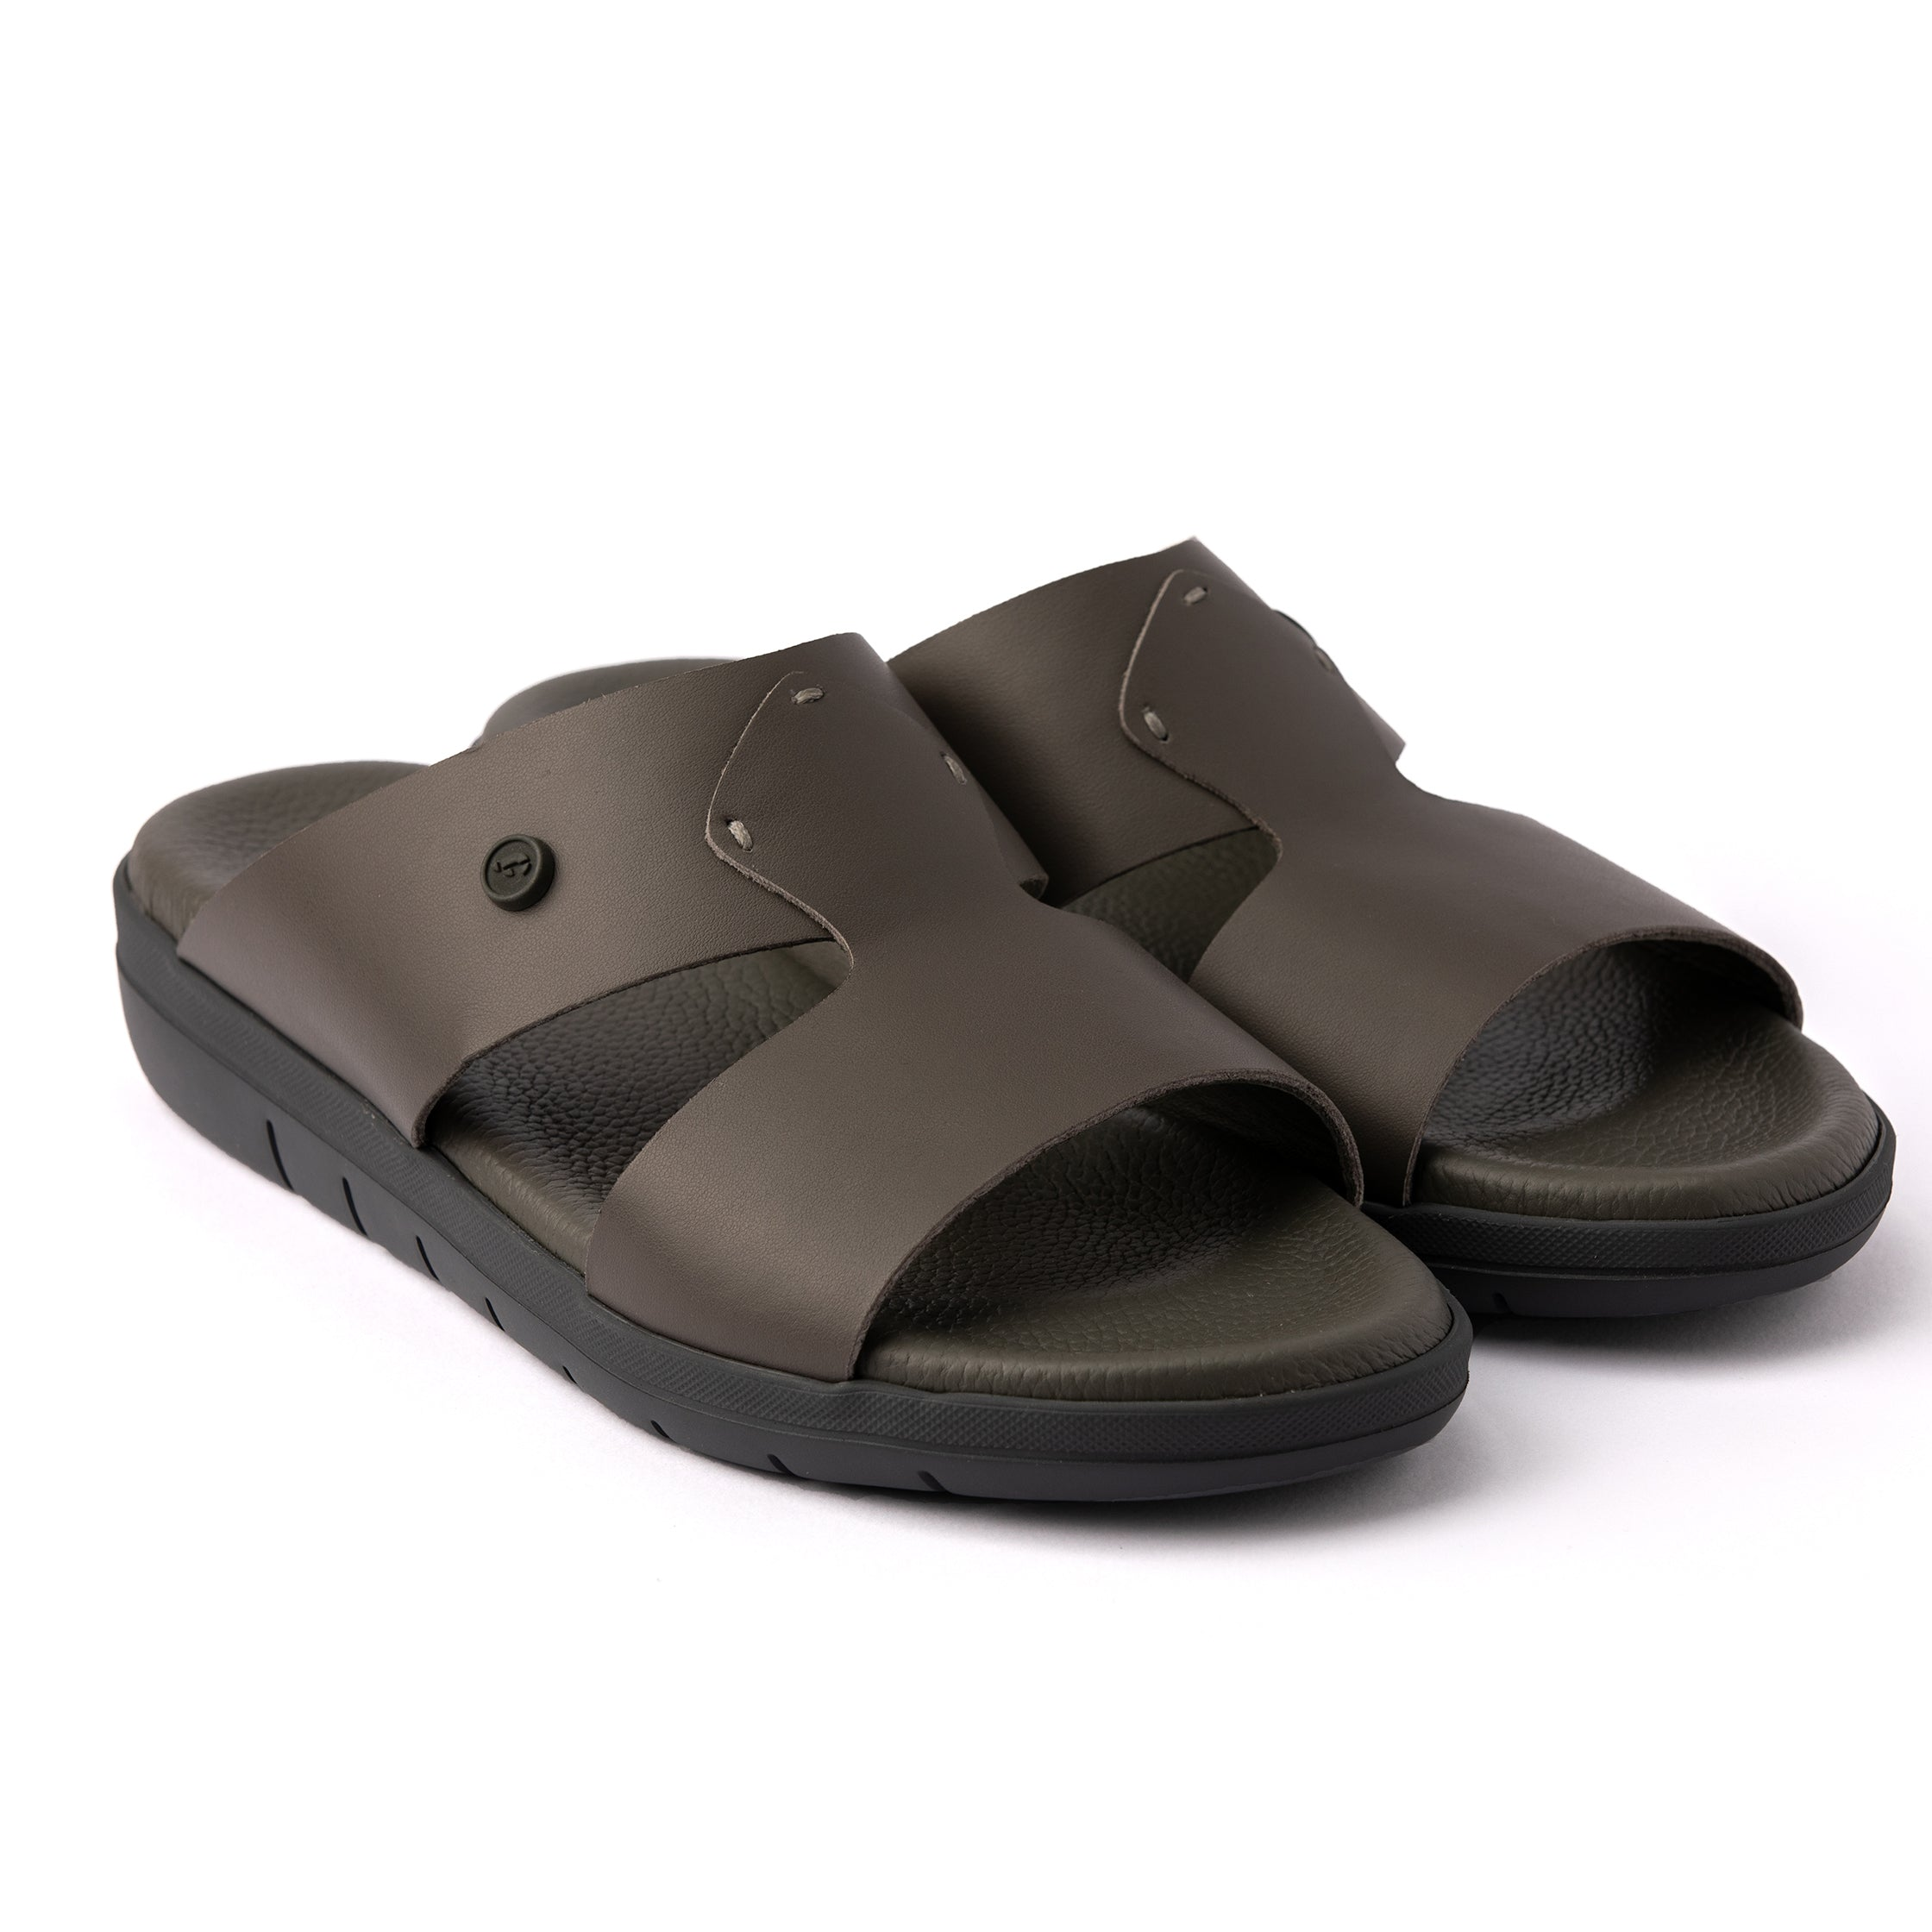 GREY Napa(904) Arabic Sandals